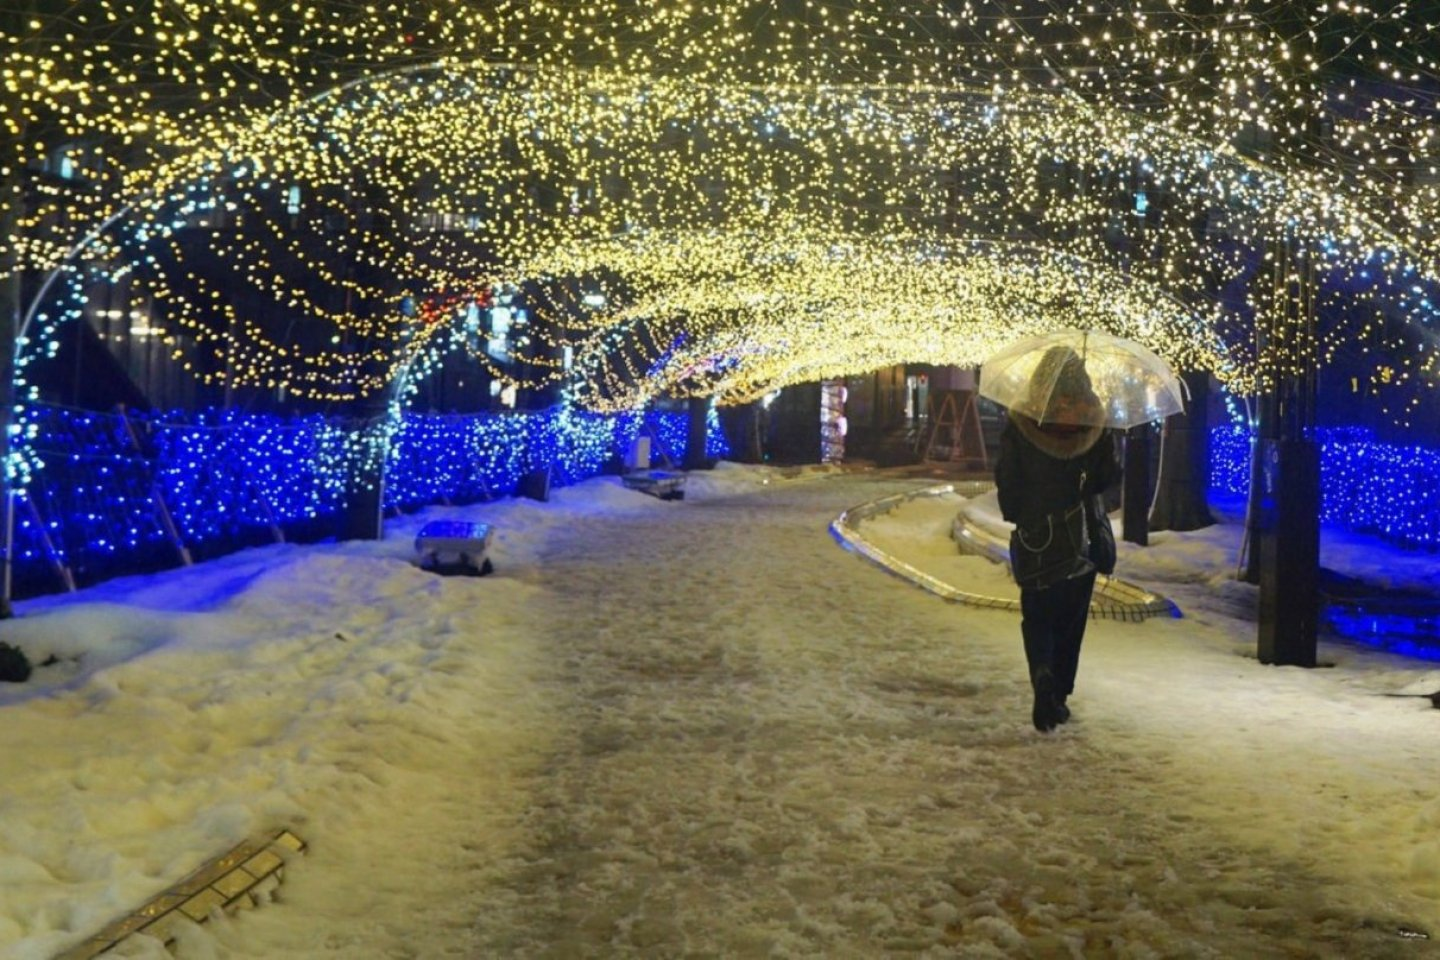 Kawabata Street is a 15 minute stroll from Akita railway station, which is transformed into a winter wonderland.